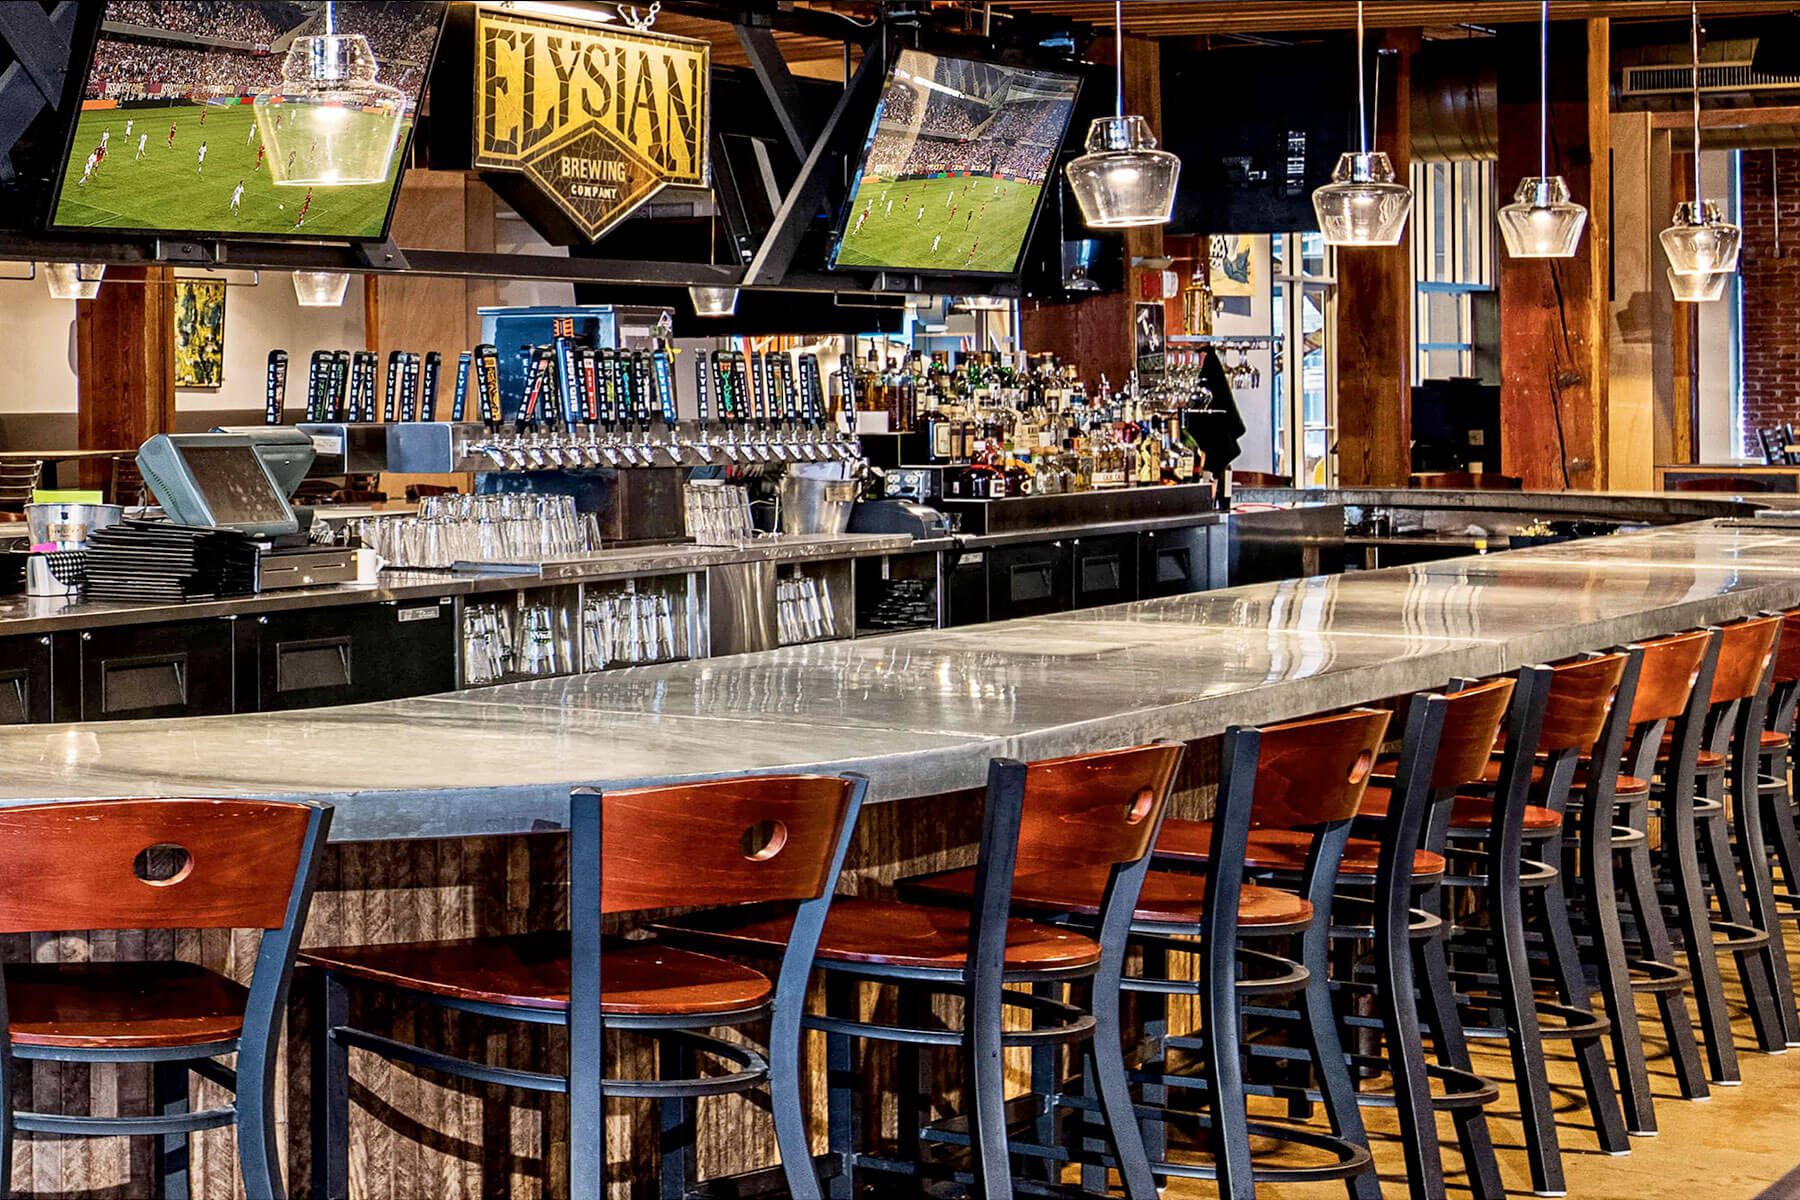 Inside the Tap Room of Elysian Brewing Company in Seattle, Wasington